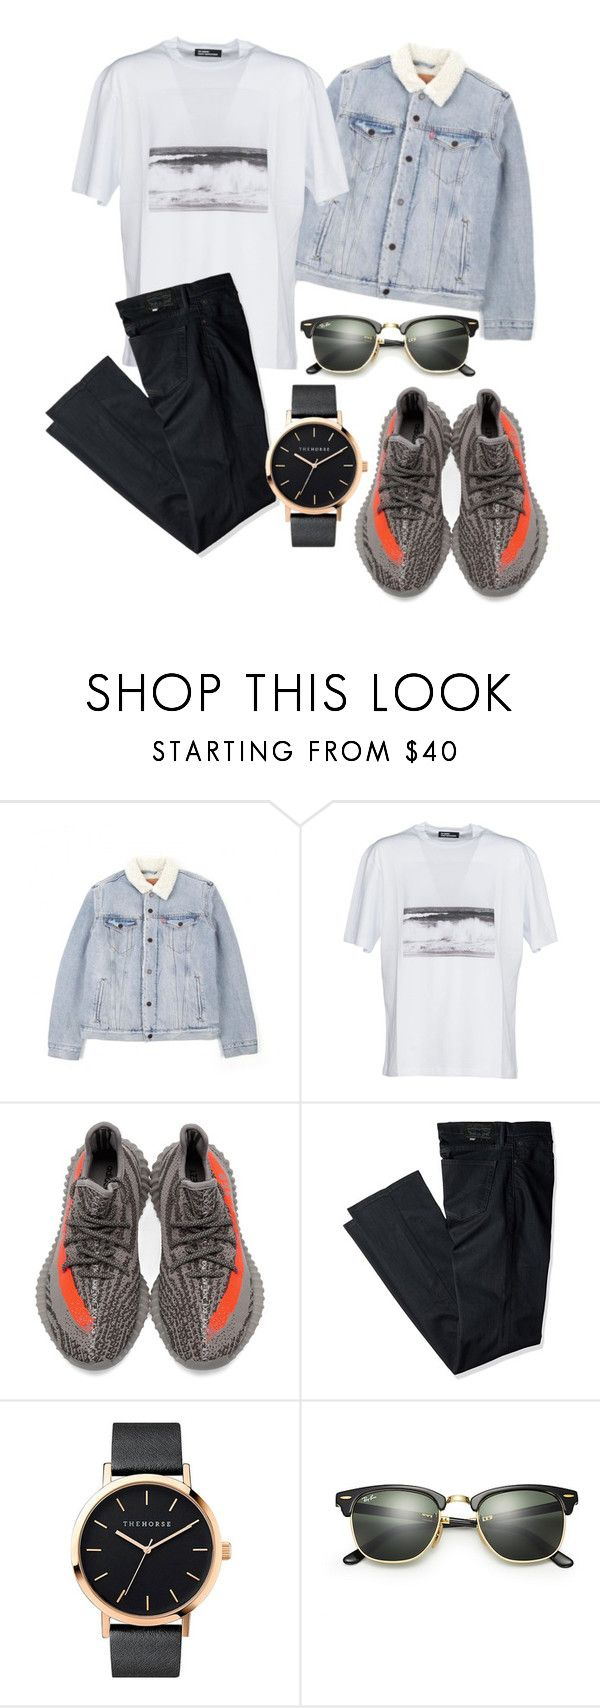 """outfit#95"" by alifia-fae on Polyvore featuring Levi's, Raf Simons, adidas, The Horse, Ray-Ban, men's fashion and menswear"